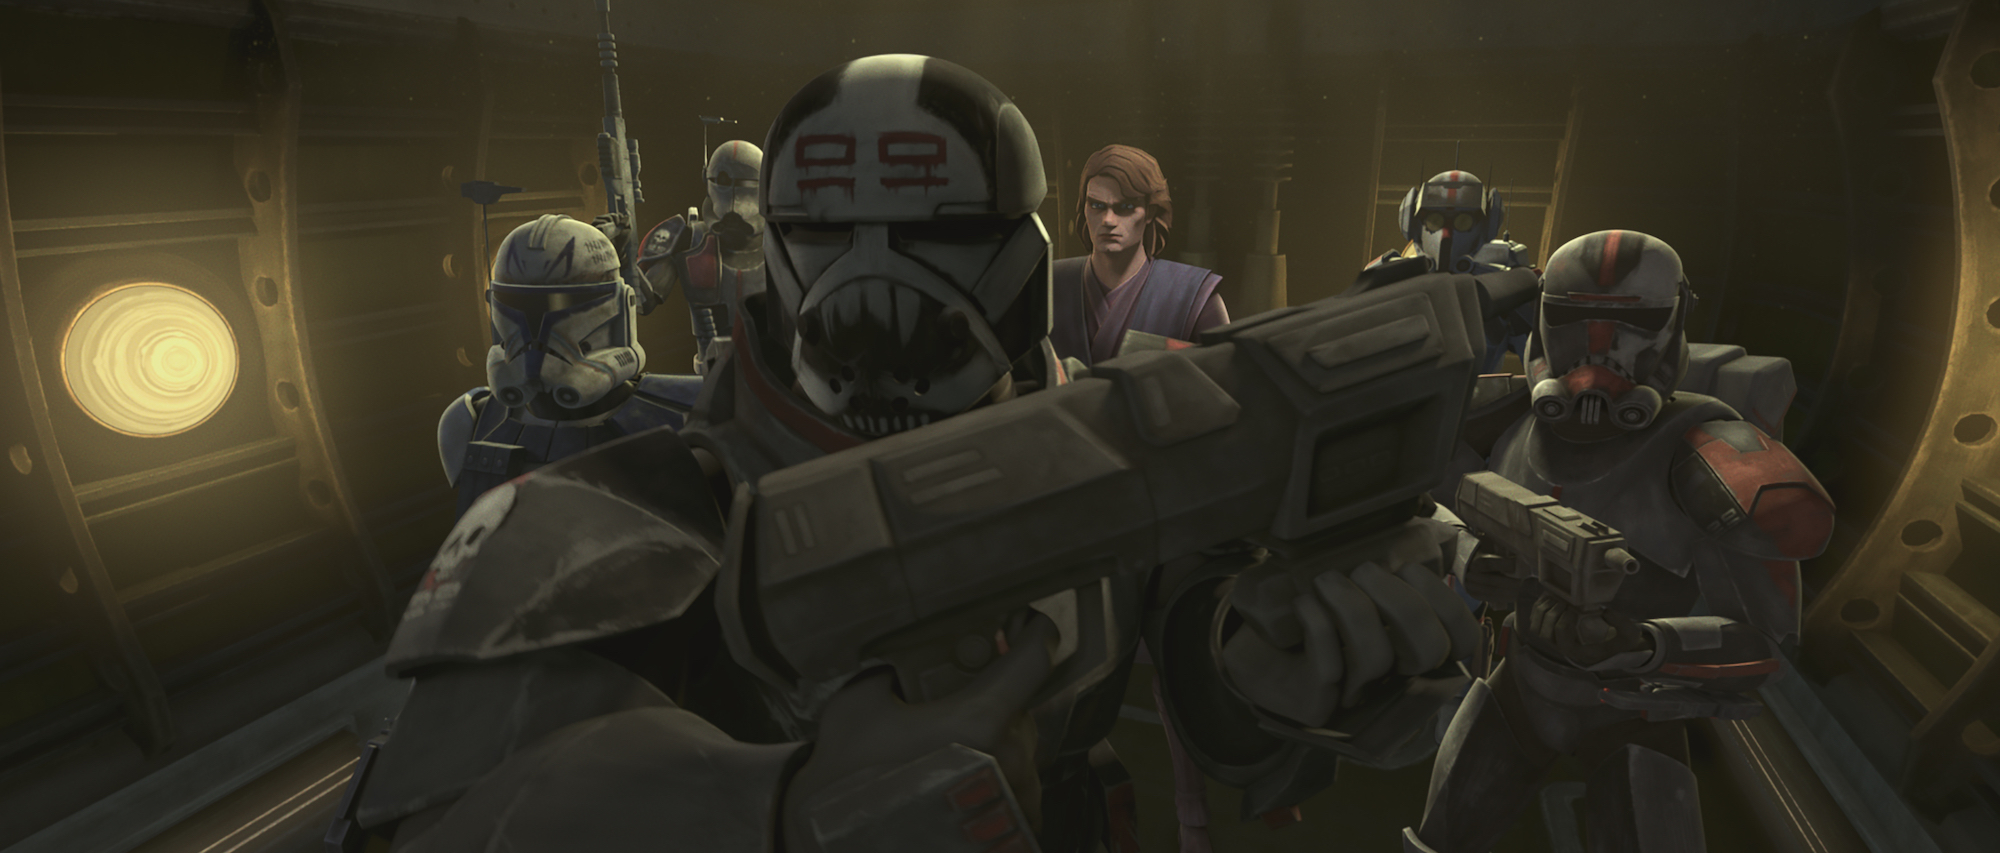 The Bad Batch go in to save Echo with Anakin Skywalker and Captain Rex in Season 7, 'The Clone Wars'